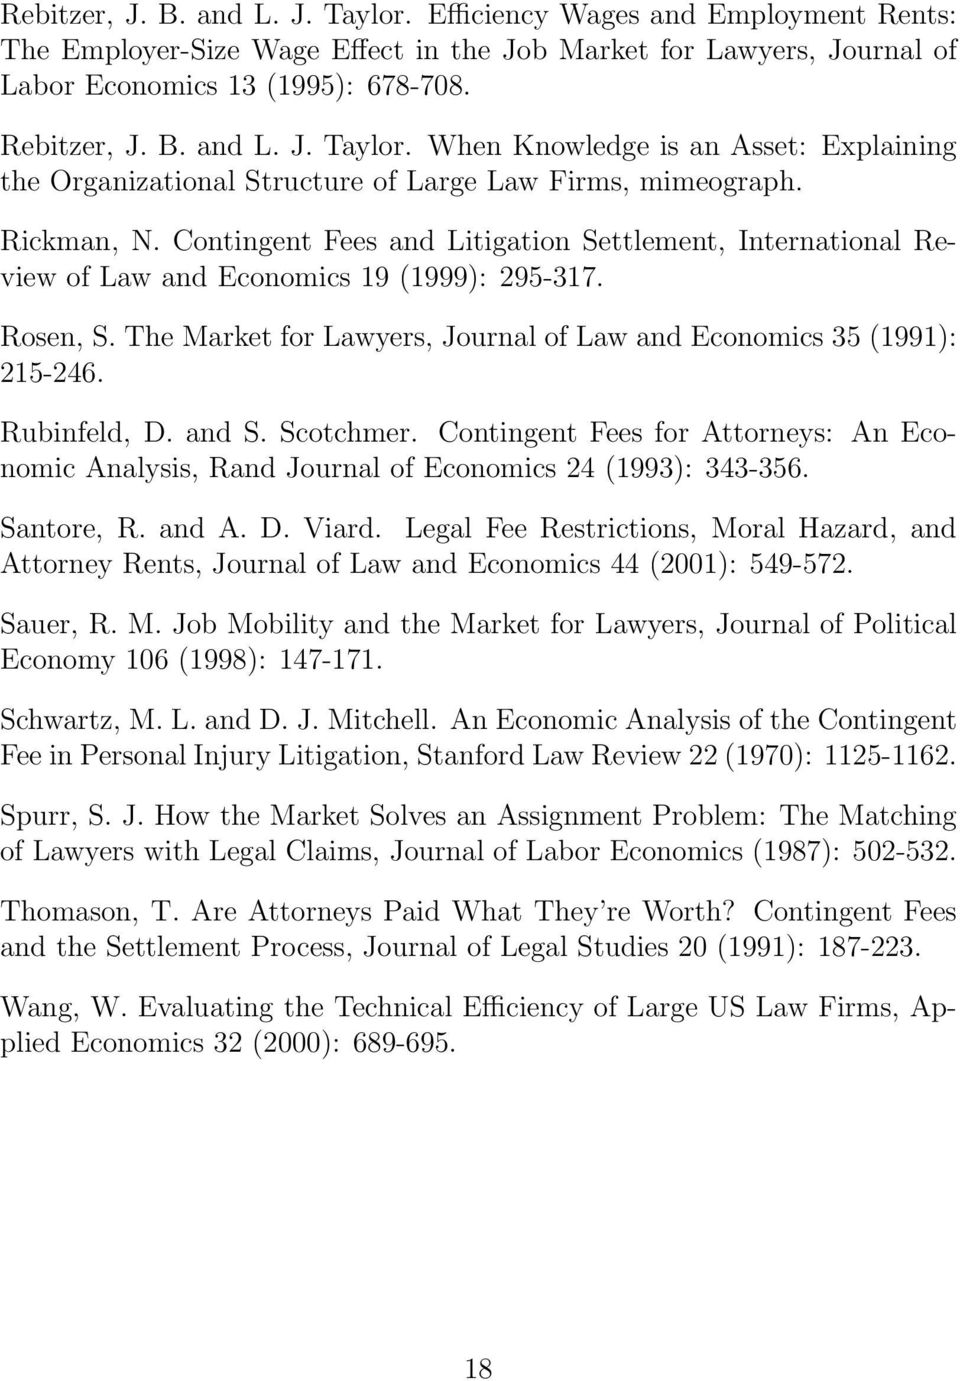 Rubinfeld, D. and S. Scotchmer. Contingent Fees for Attorneys: An Economic Analysis, Rand Journal of Economics 24 (1993): 343-356. Santore, R. and A. D. Viard.